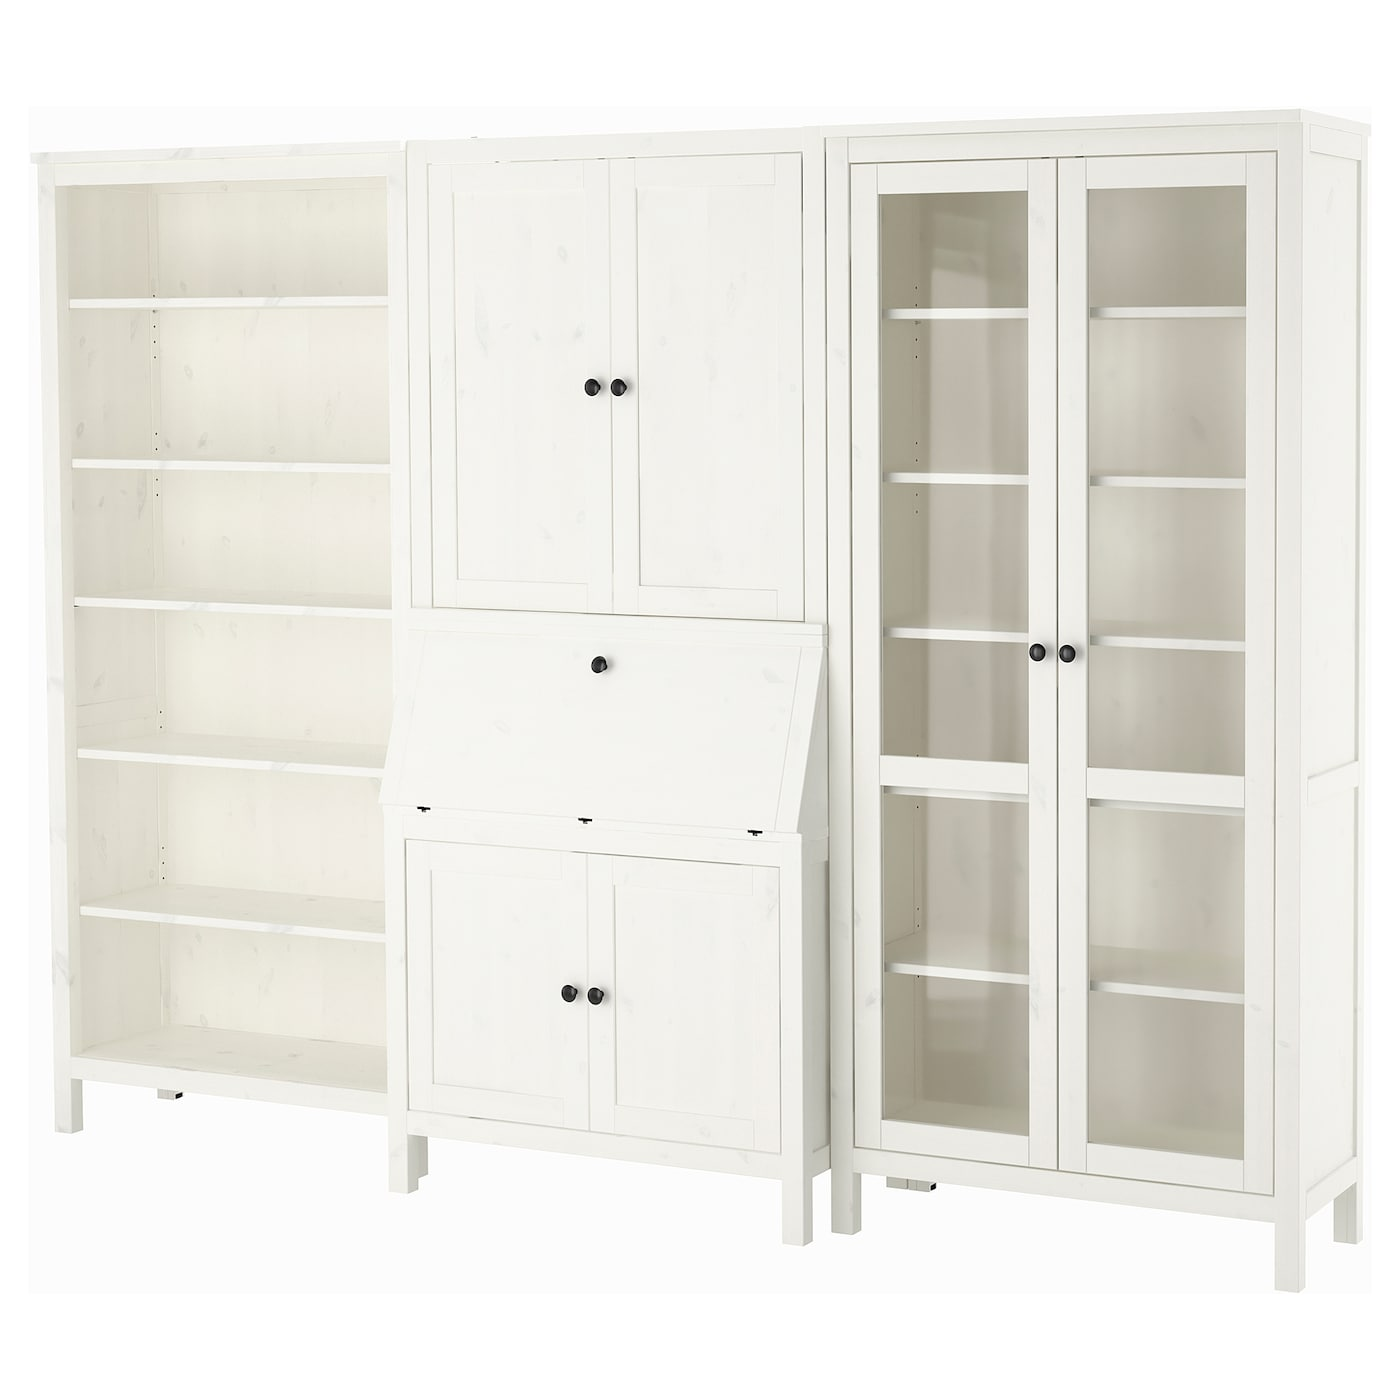 Hemnes bureau with add on unit bookcase white stained for Bureau hemnes